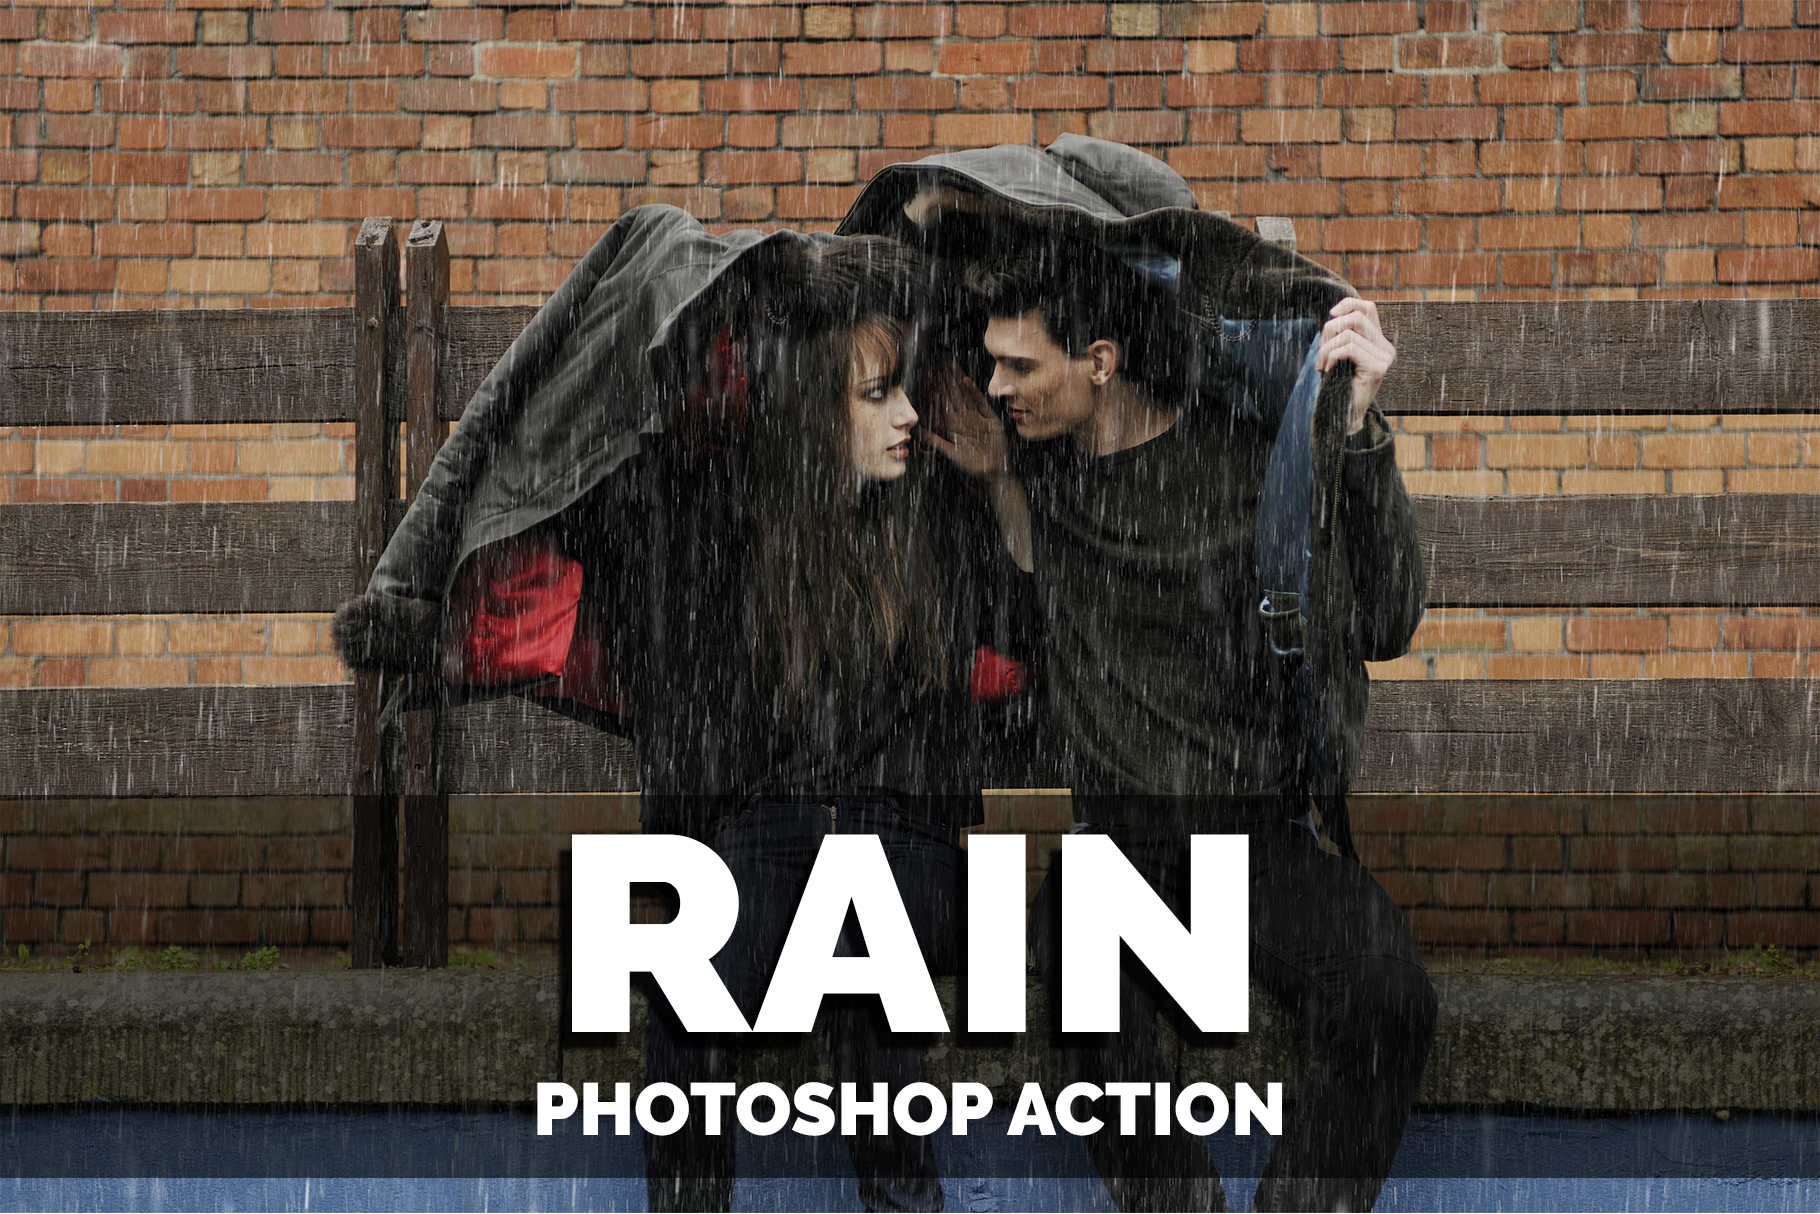 A girl and a guy are hiding from the rain under one jacket.